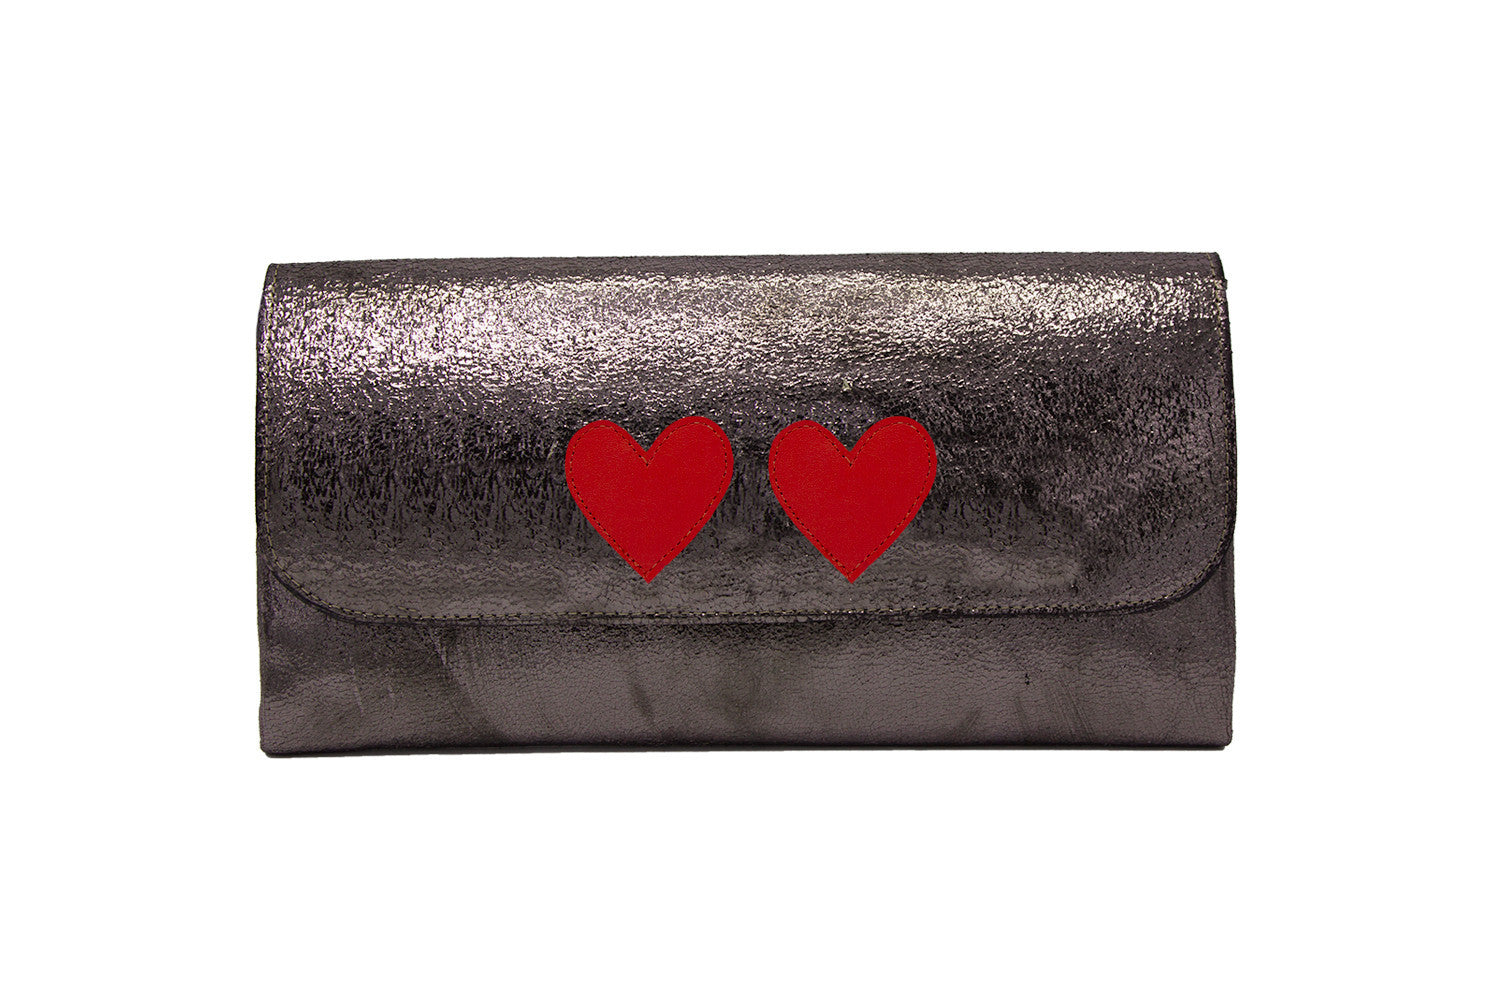 Elle Clutch Cracked Bronze Patent Leather w/ 2 Red Heart